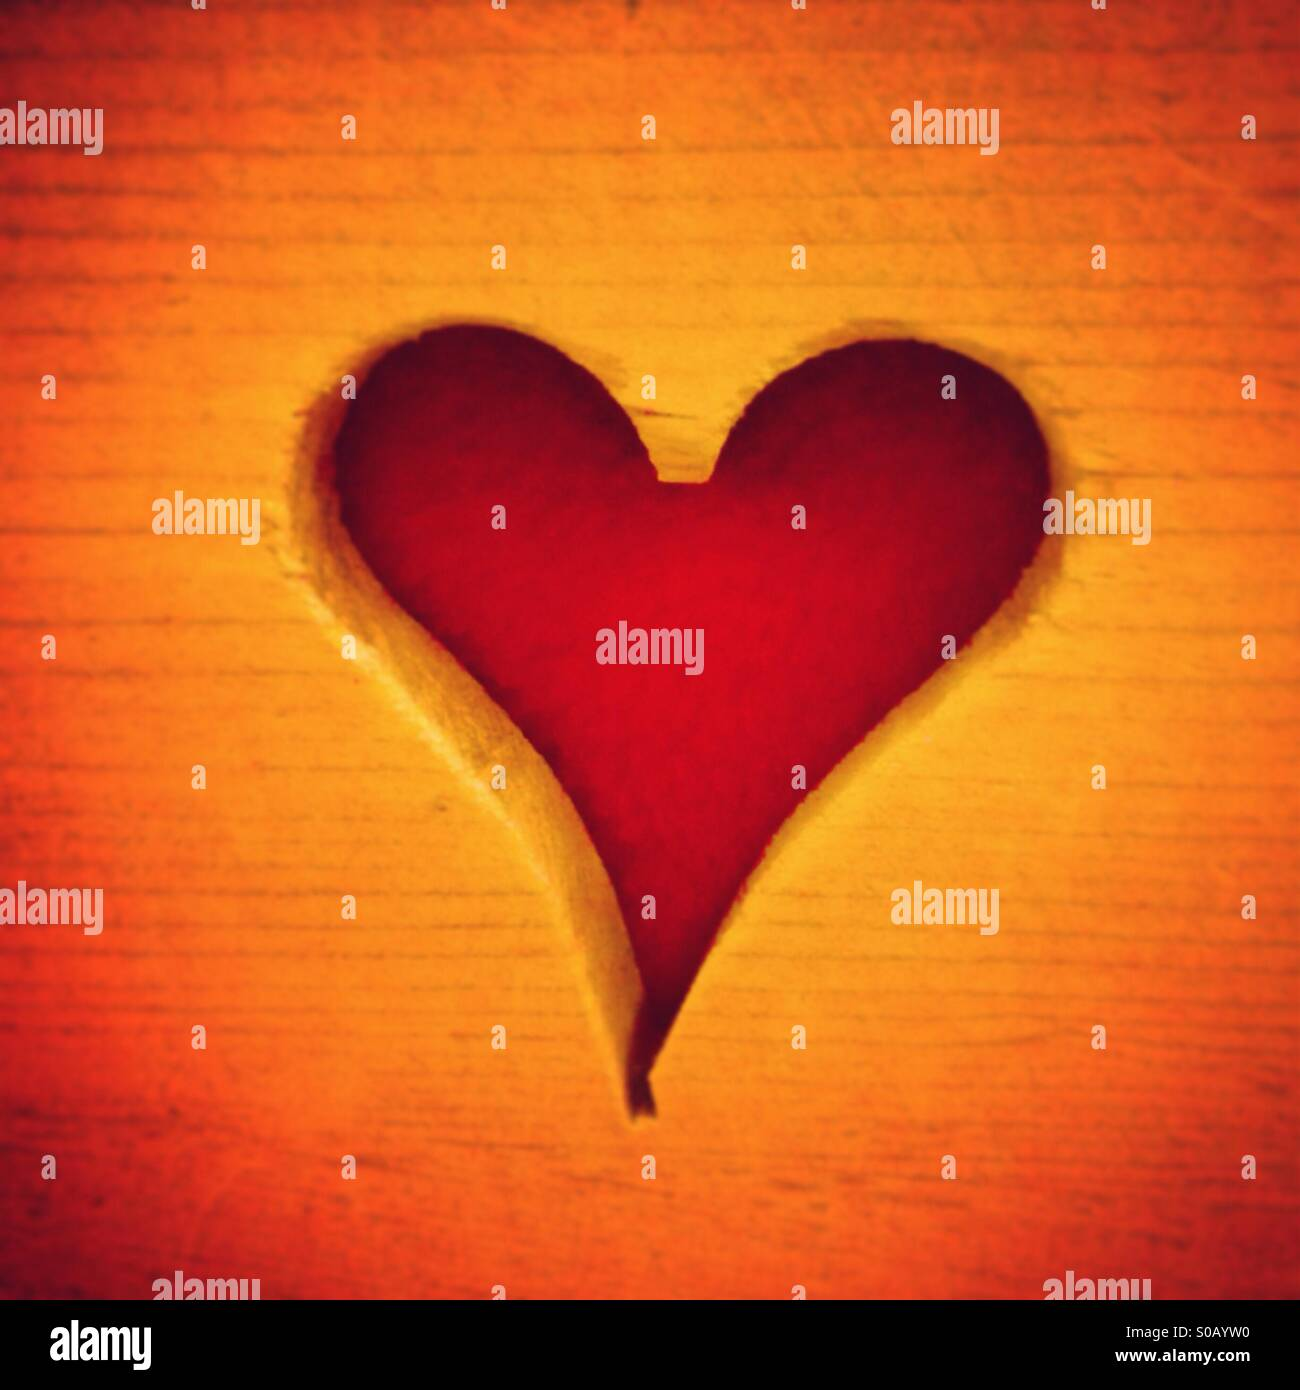 Valentine's Day - Stock Image